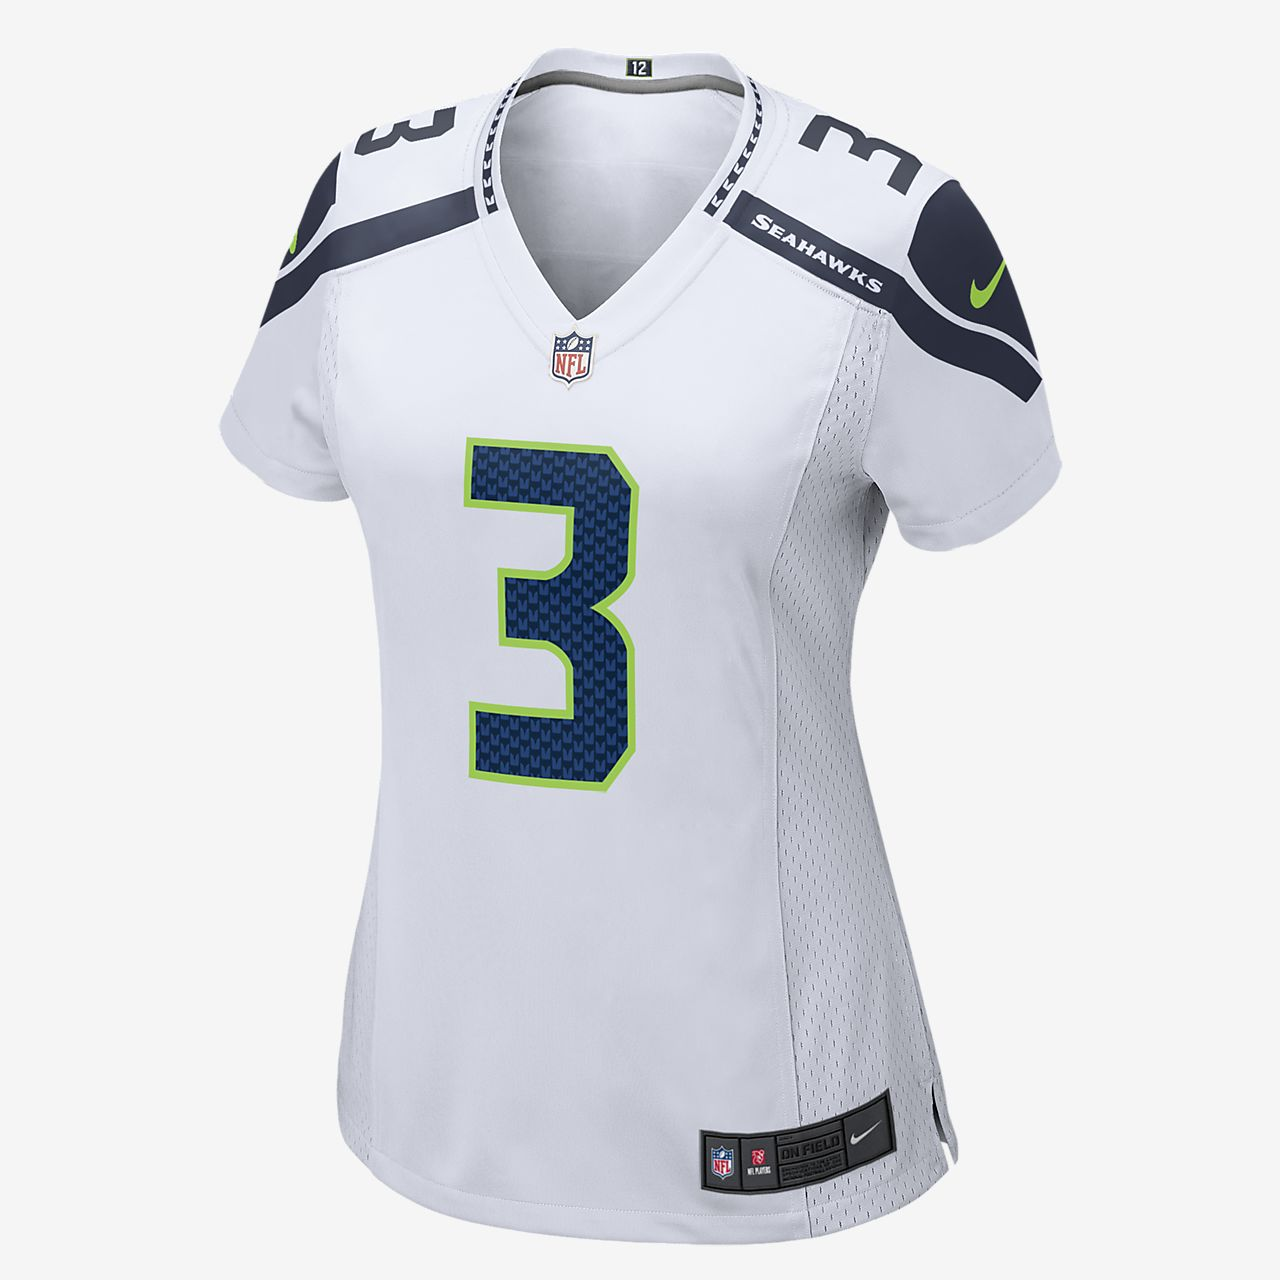 Field Nike Jersey Seahawks On edfffeadcfcde|ReceivingM. Murdock 36V. Bolden Jr